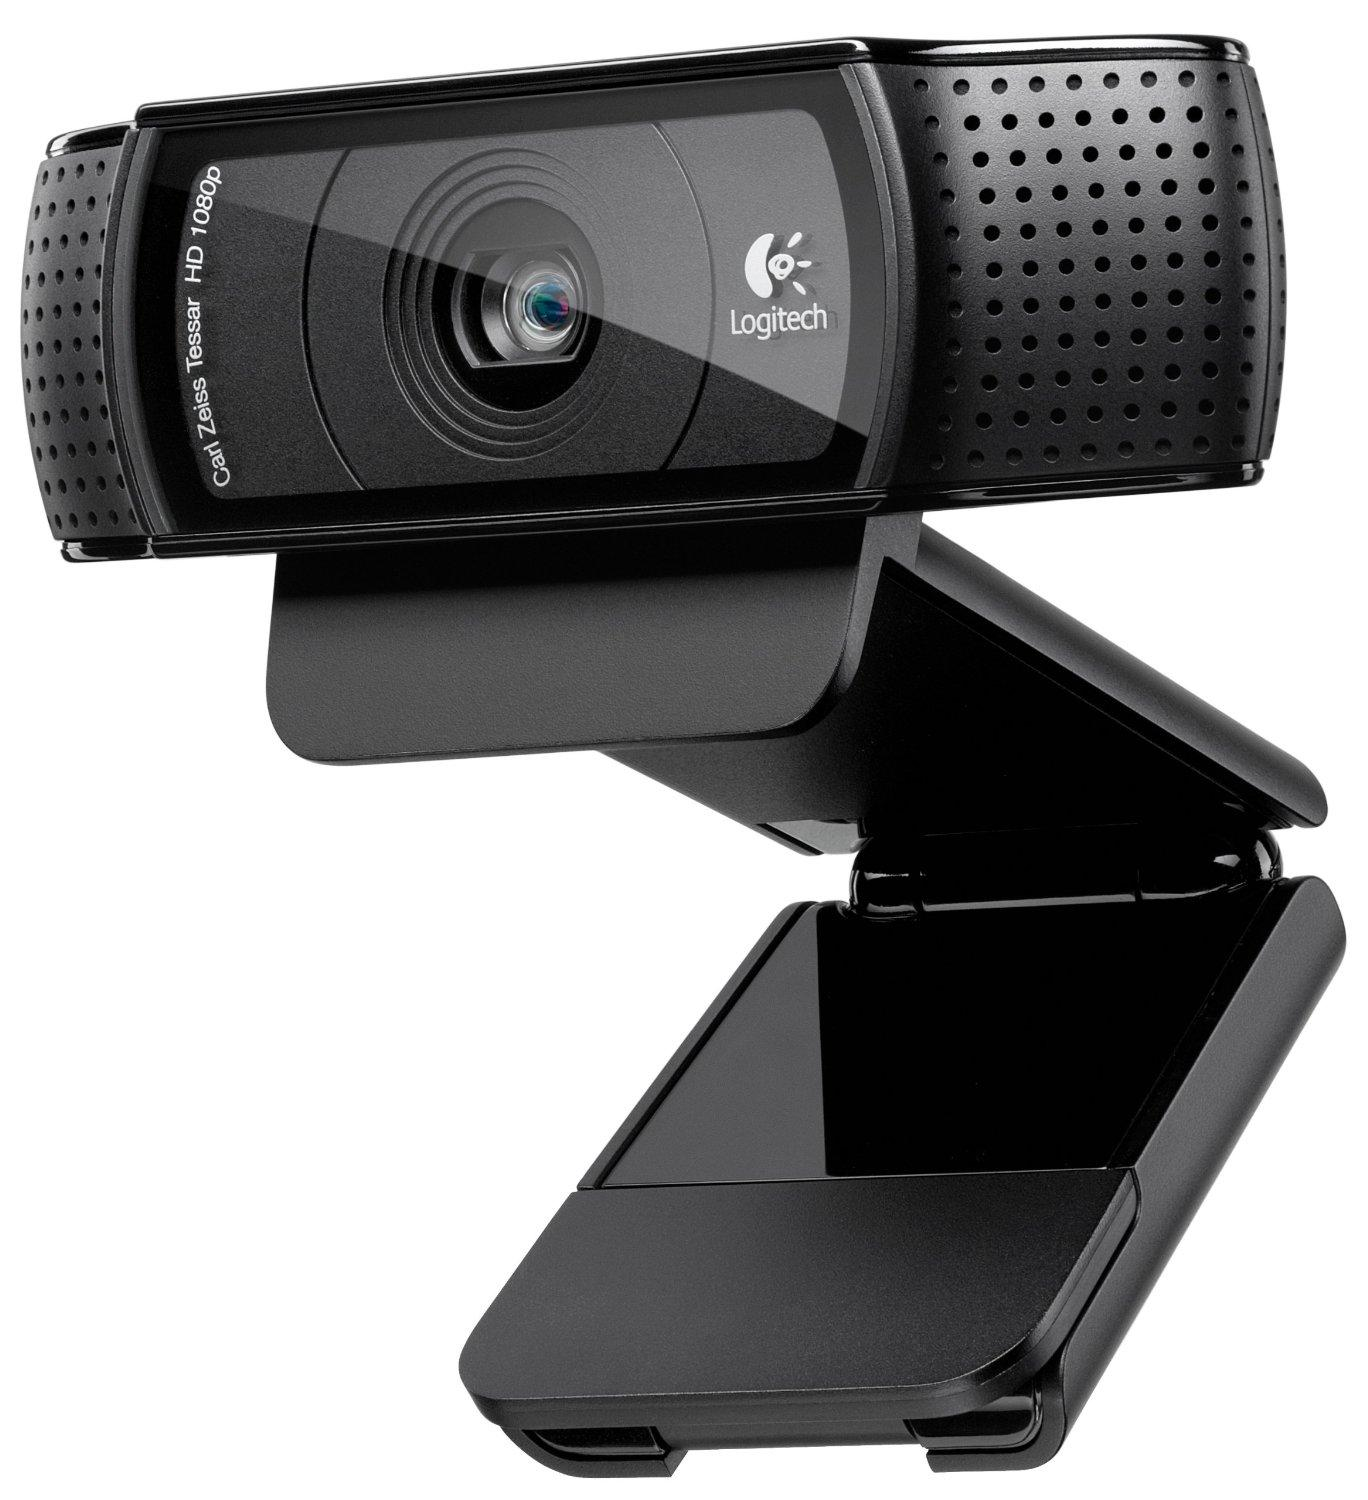 $49.95 Logitech HD Pro Webcam C920, 1080p Widescreen Video Calling and Recording